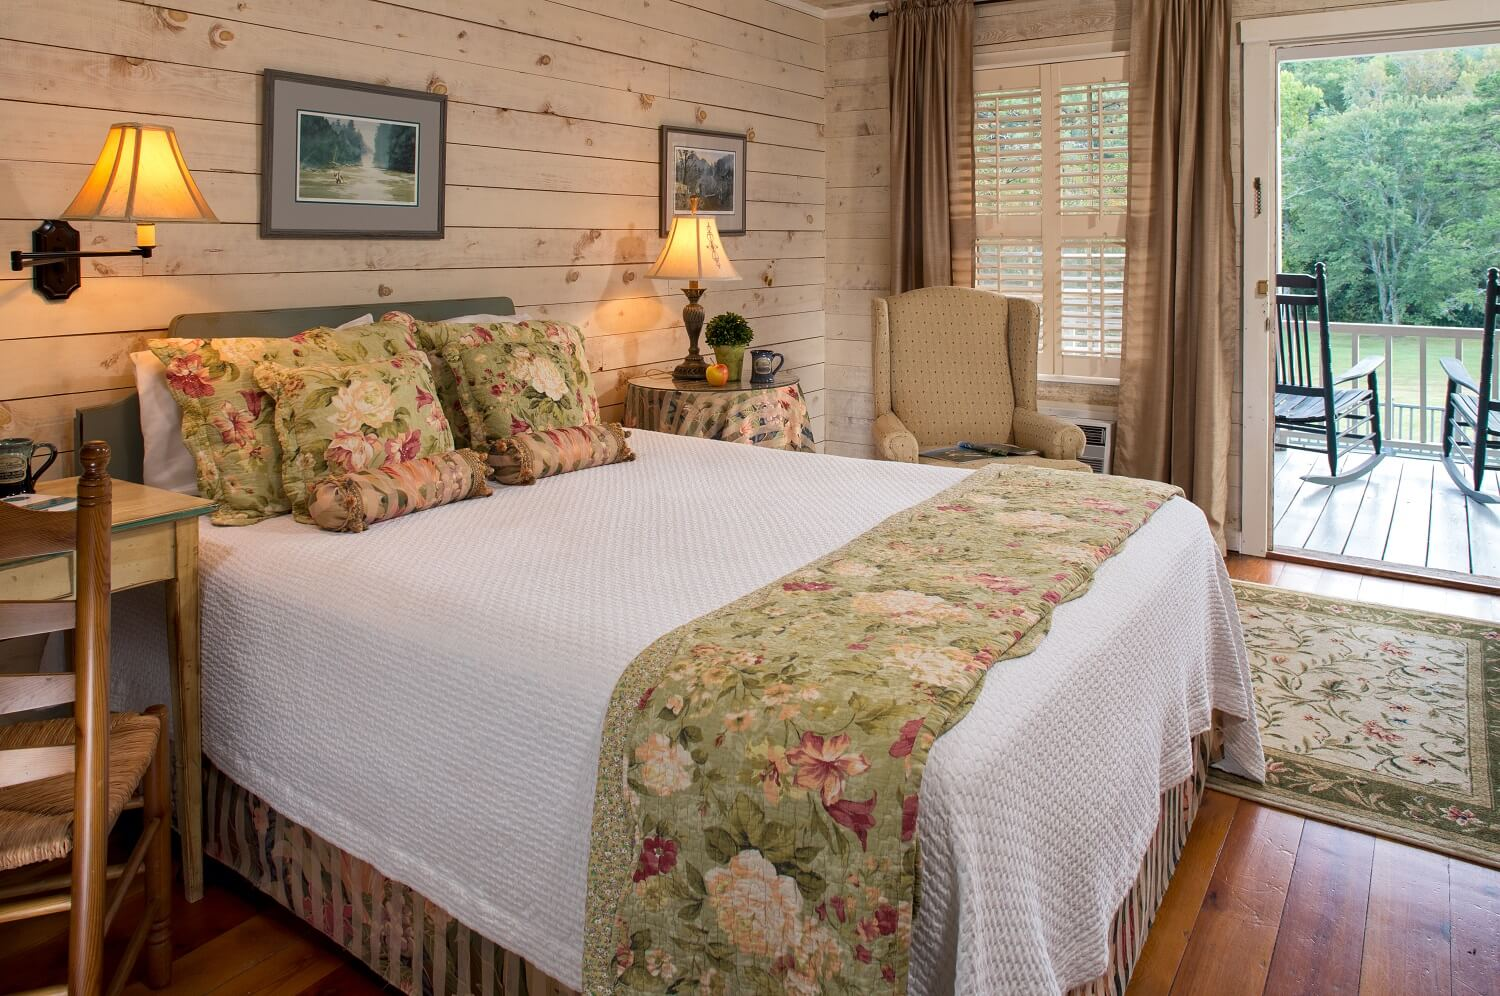 Glen-Ella Springs Inn Room near Kaya Vineyard and Winery and that's perfect for a Blue Ridge Mountain wedding